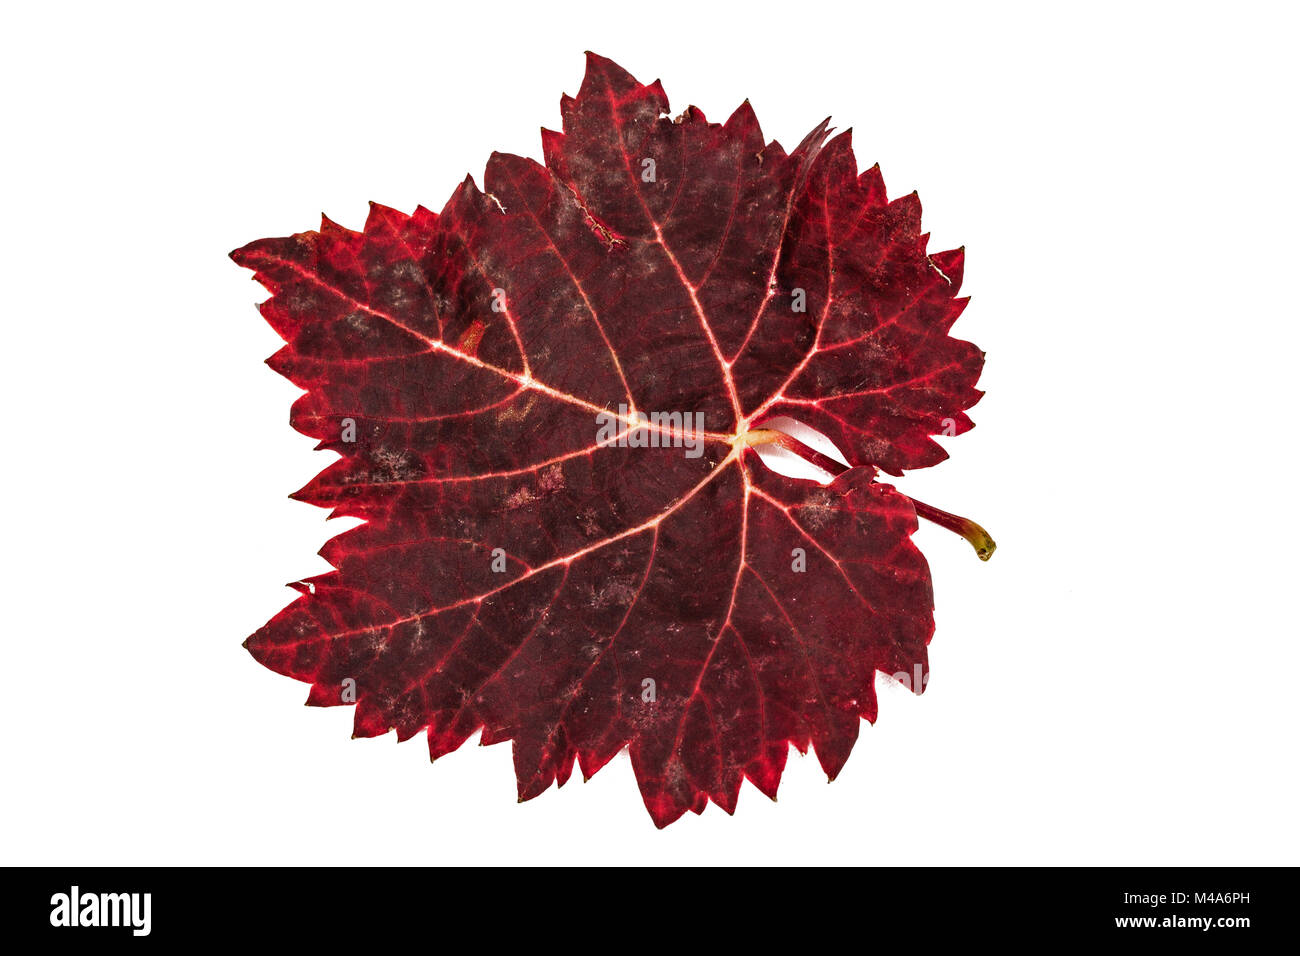 Red the fallen autumn leaf, isolated on white background Stock Photo